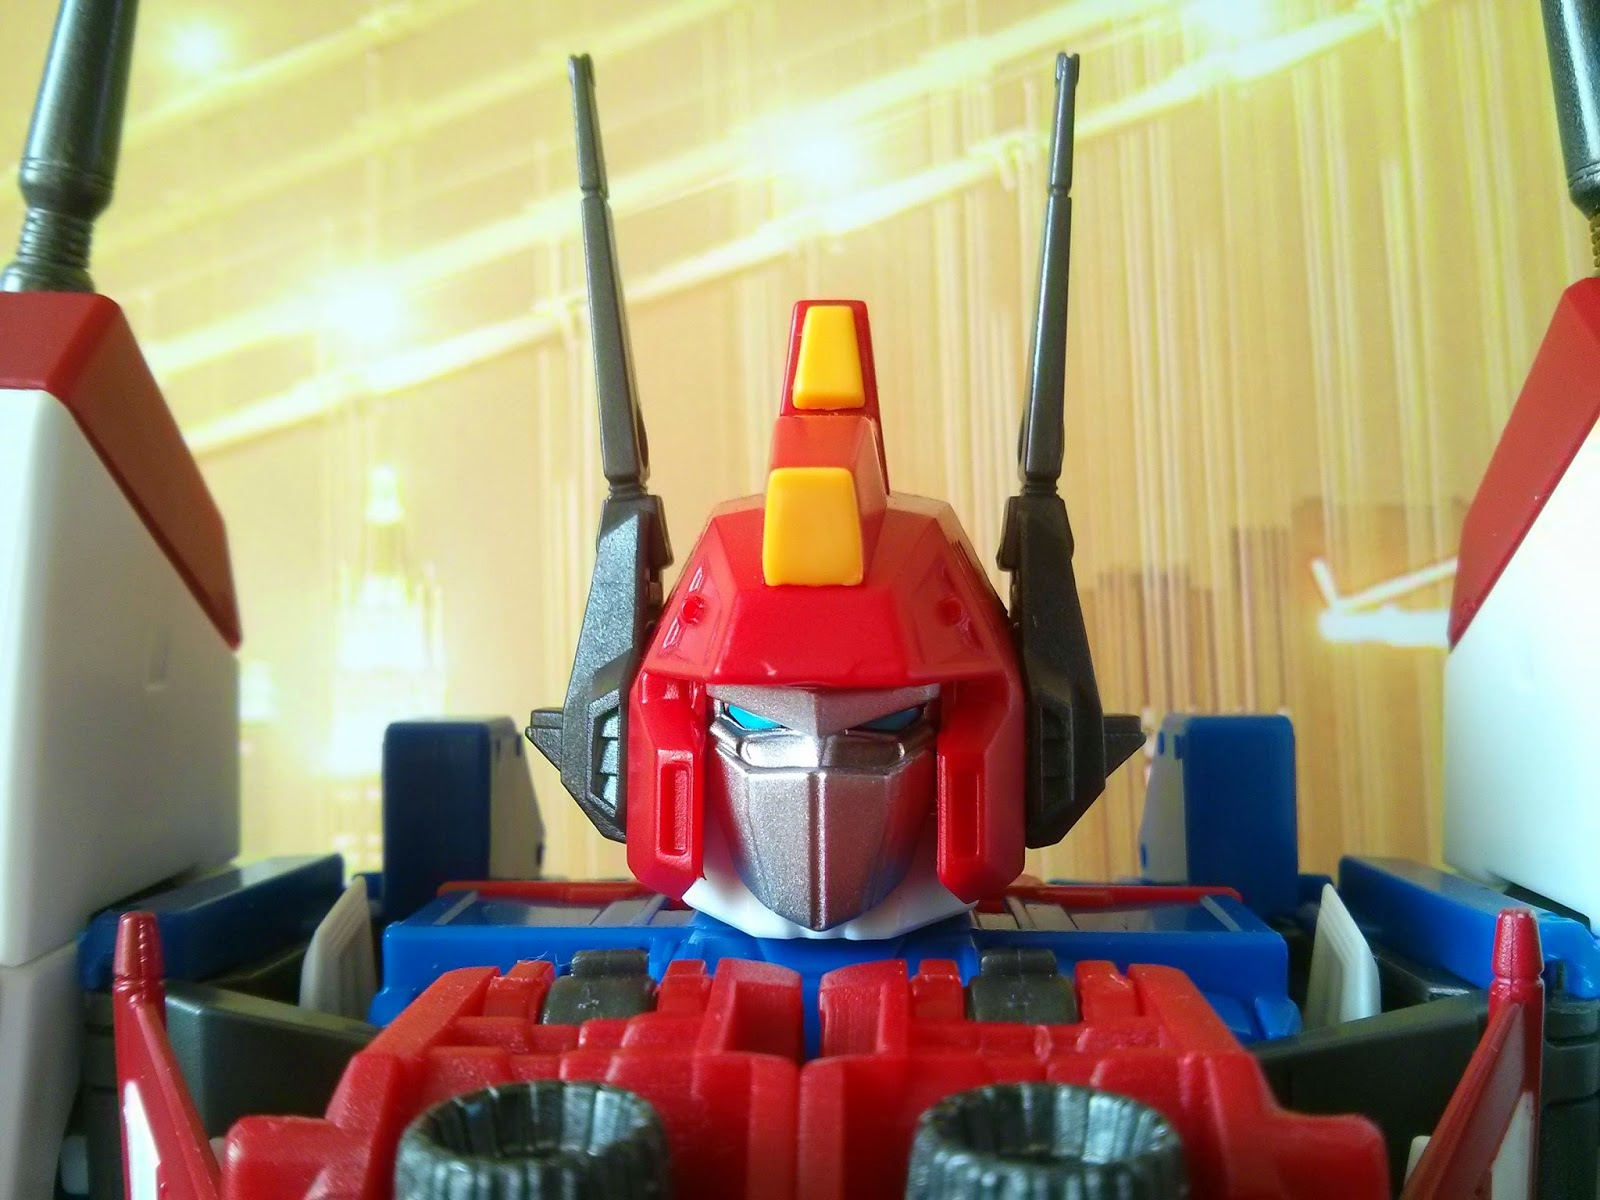 Masterpiece star saber head